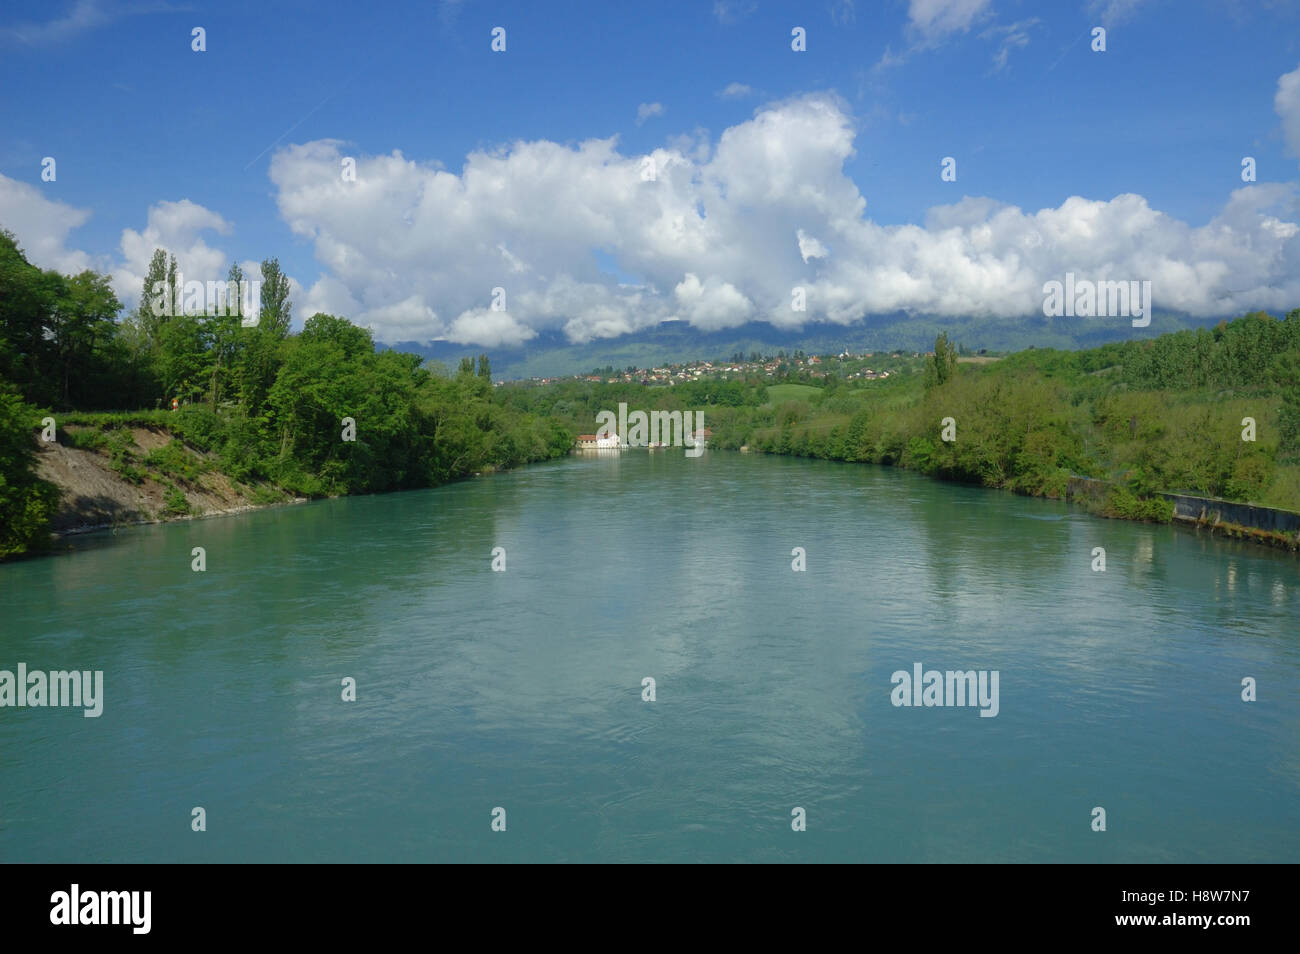 Rhone river in Switzerland flowing south to France. - Stock Image